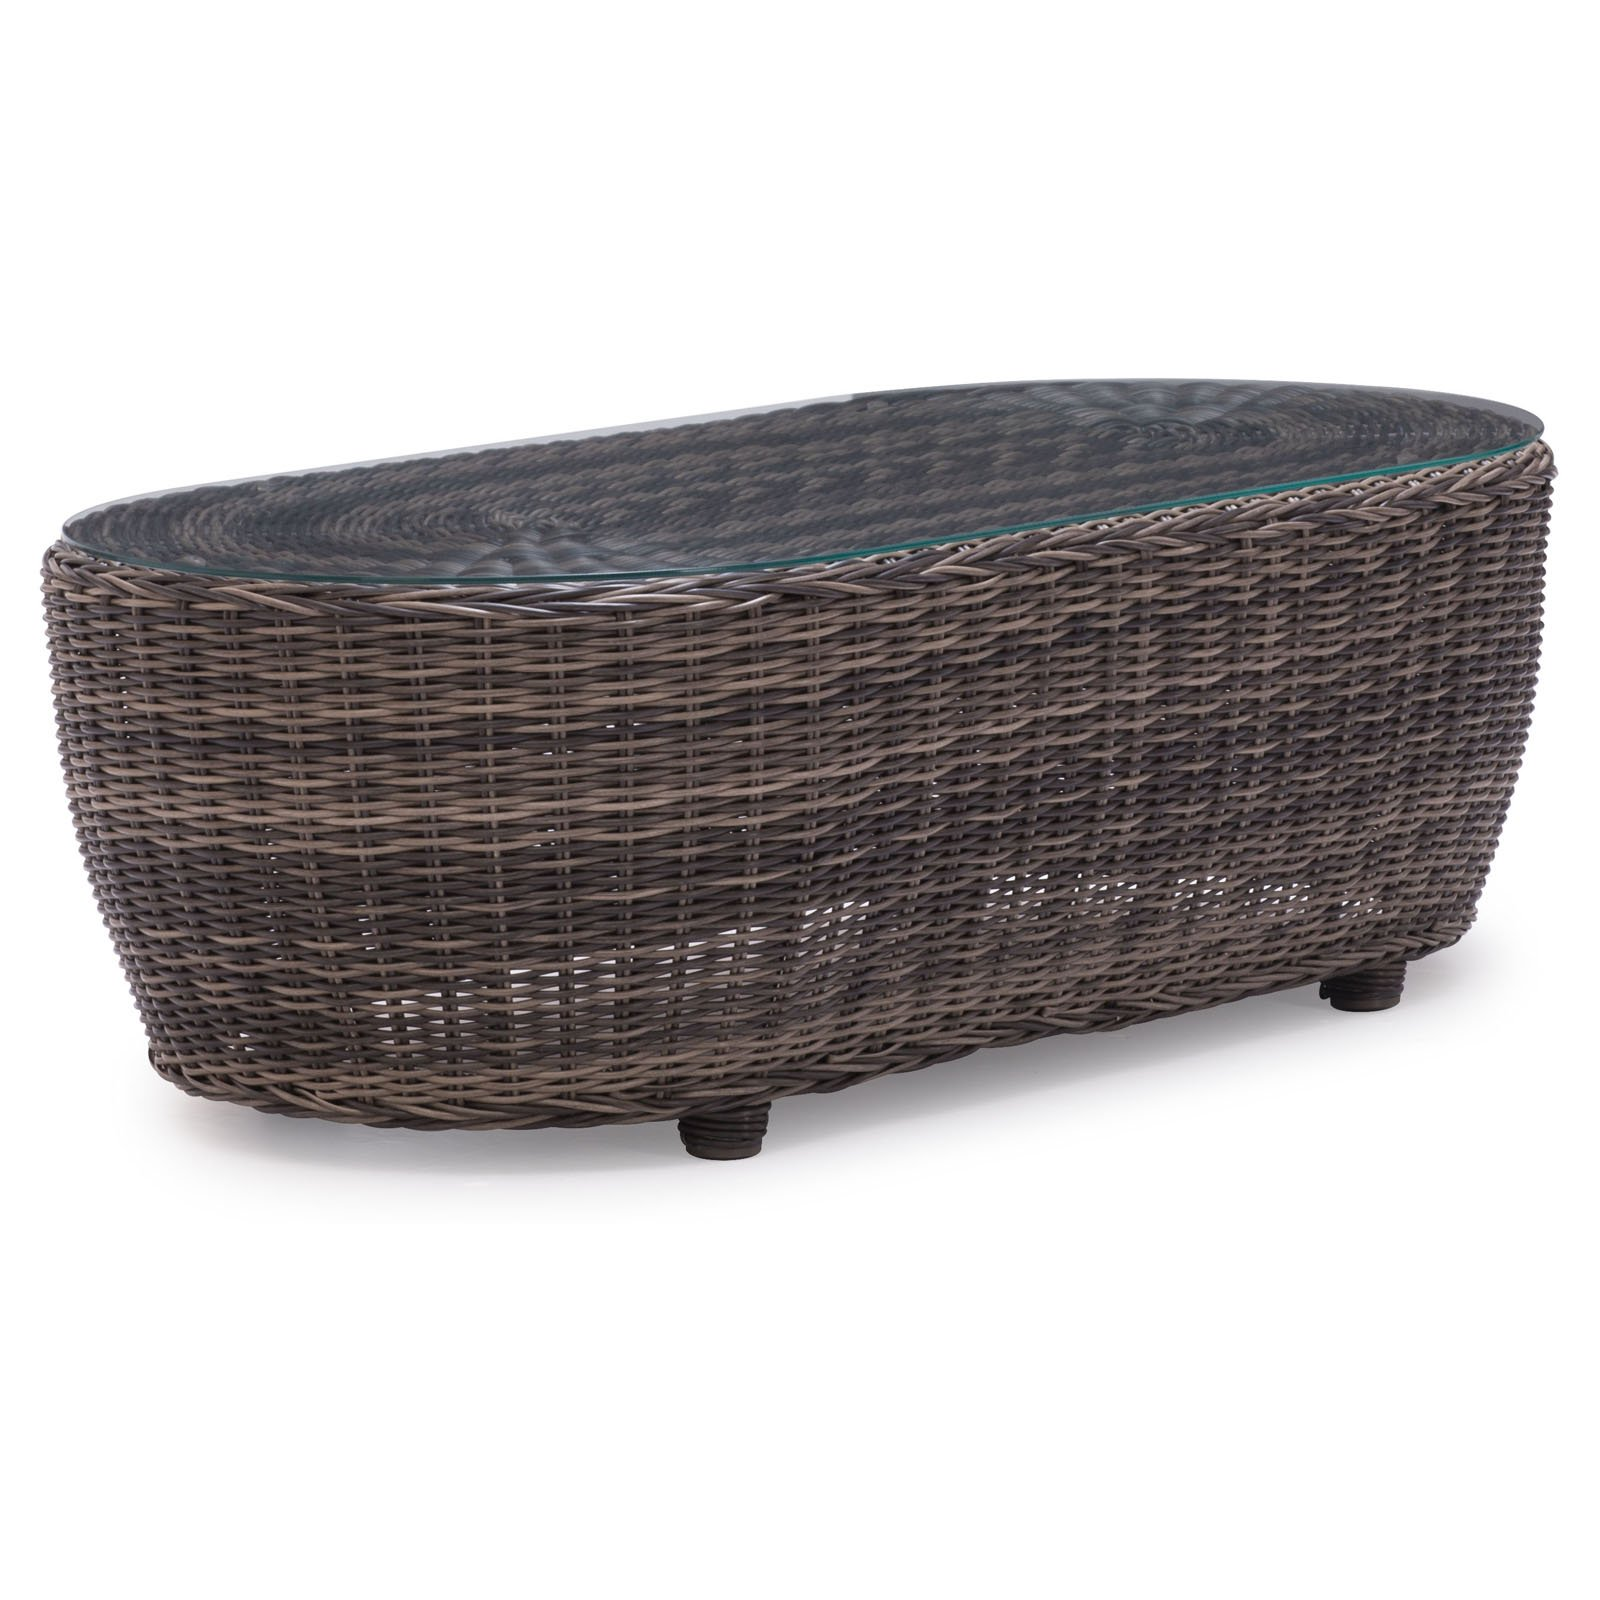 Zuo Vive Praia All-Weather Wicker Coffee Table